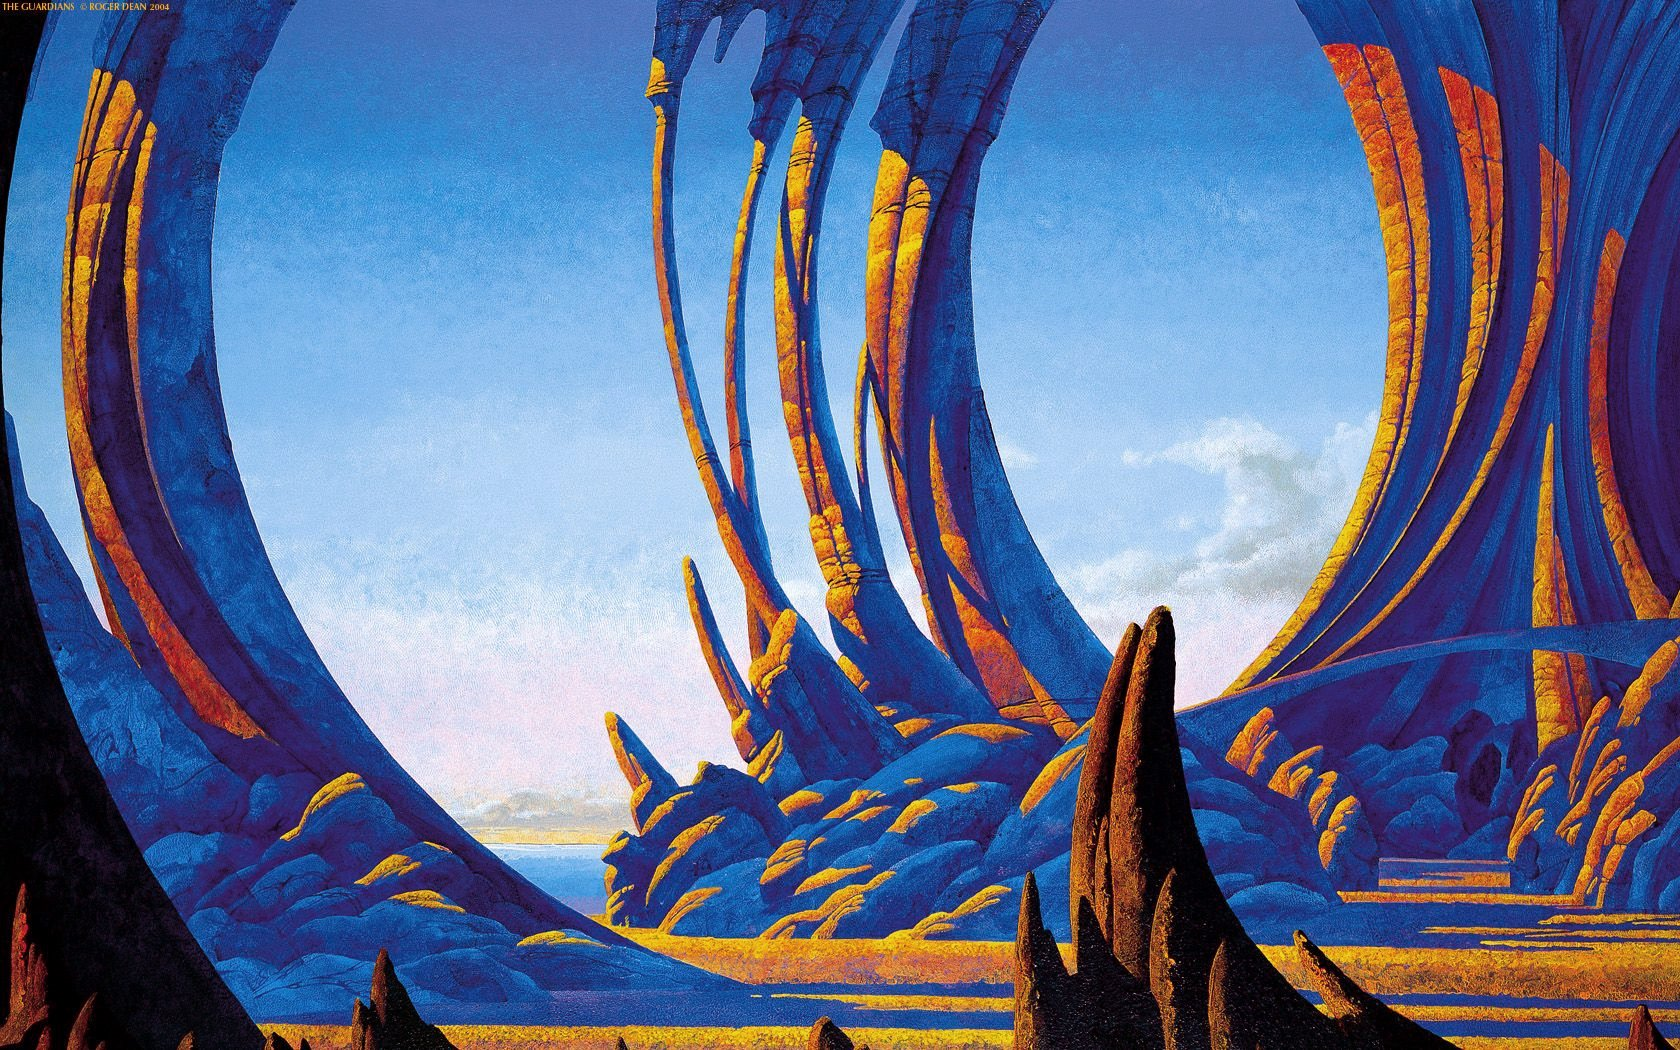 Roger Dean - The Guardians